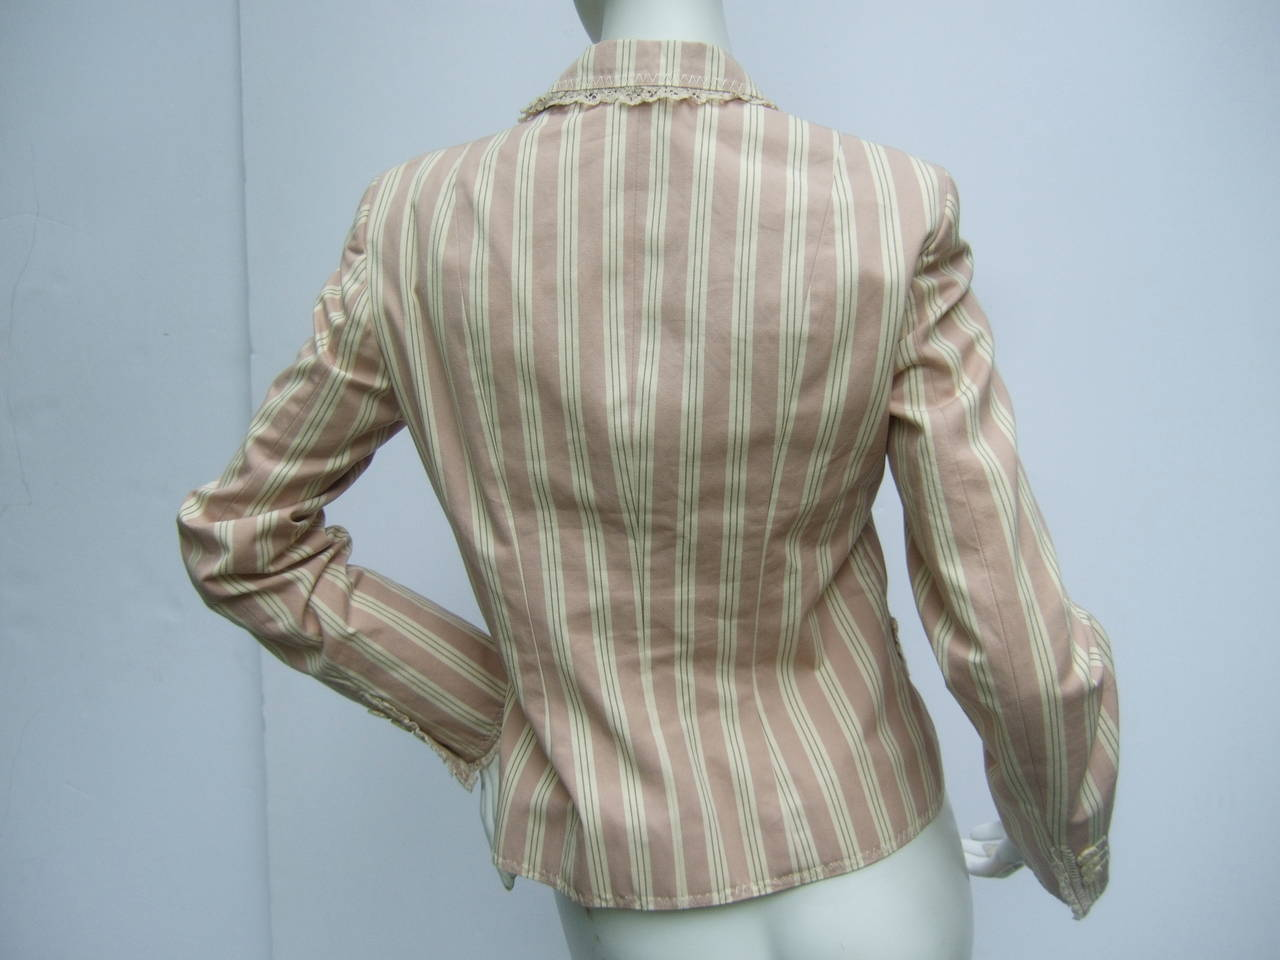 Moschino Cotton Awning Striped Jacket US Size 8 For Sale 2